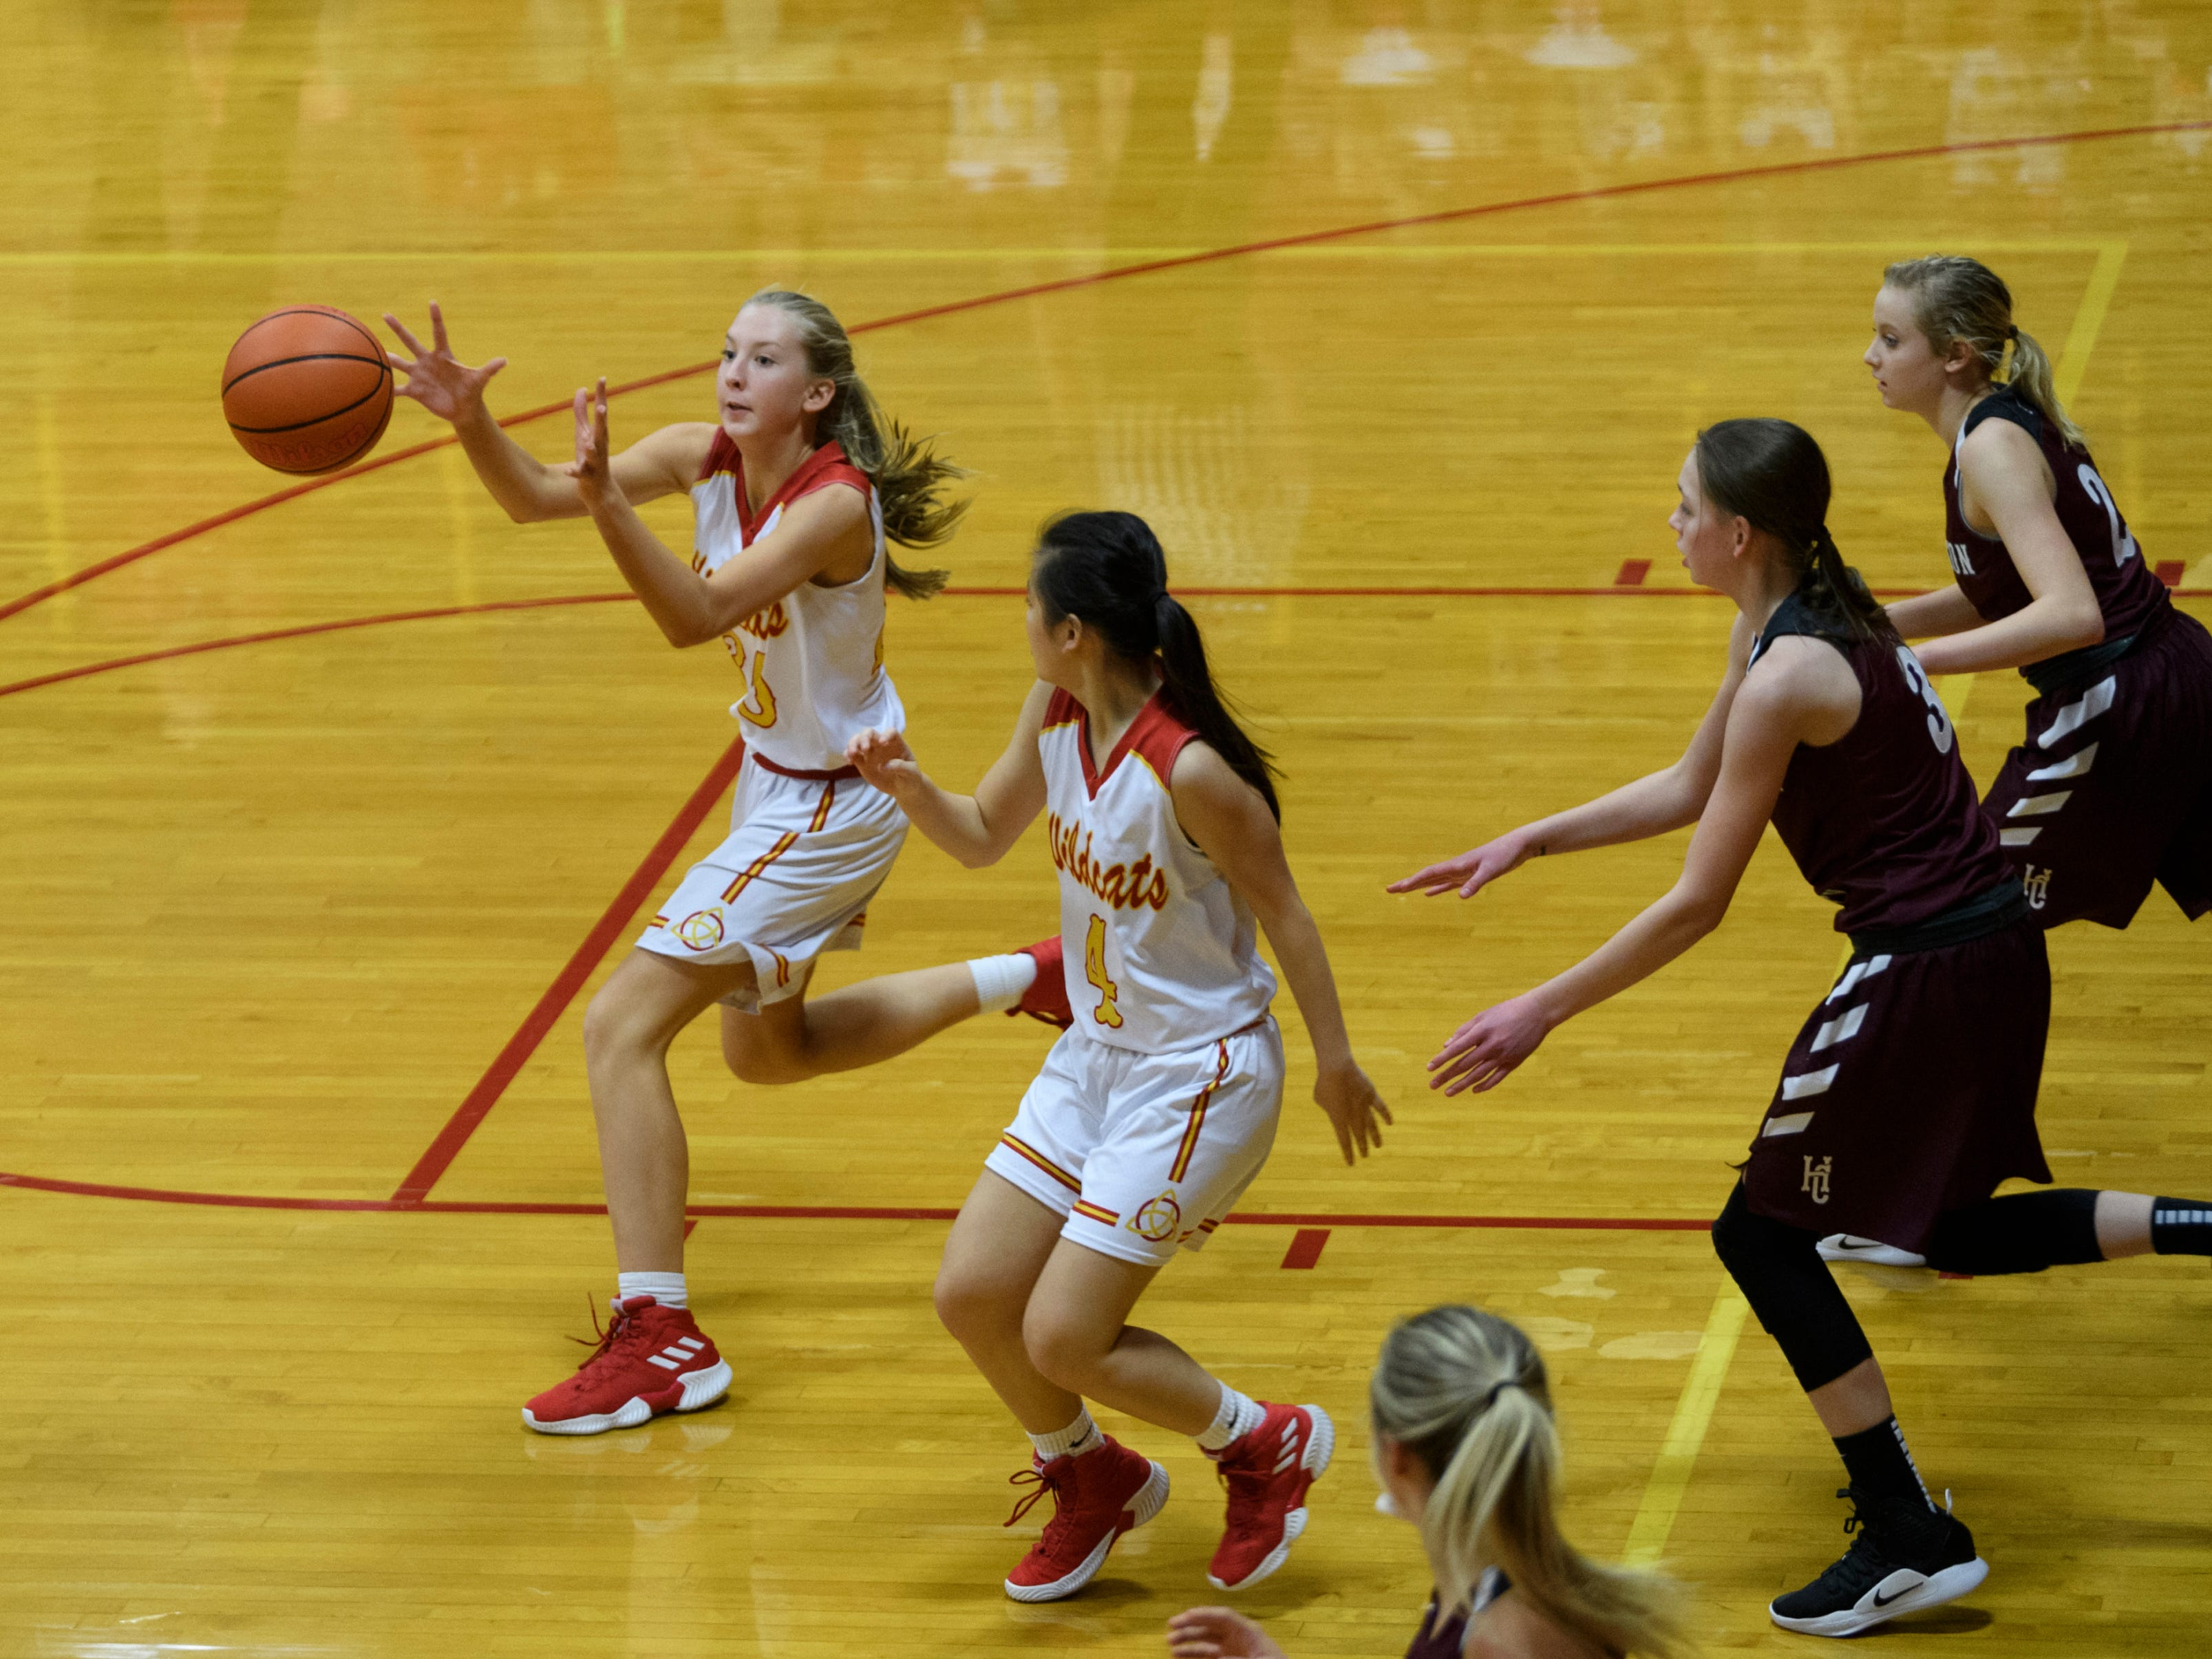 Mater Dei's Kennedy Wenger (30) receives a pass during the fourth quarter at Mater Dei High School in Evansville, Tuesday, Dec. 11, 2018. The Lady Colonels defeated the Wildcats 53-40.